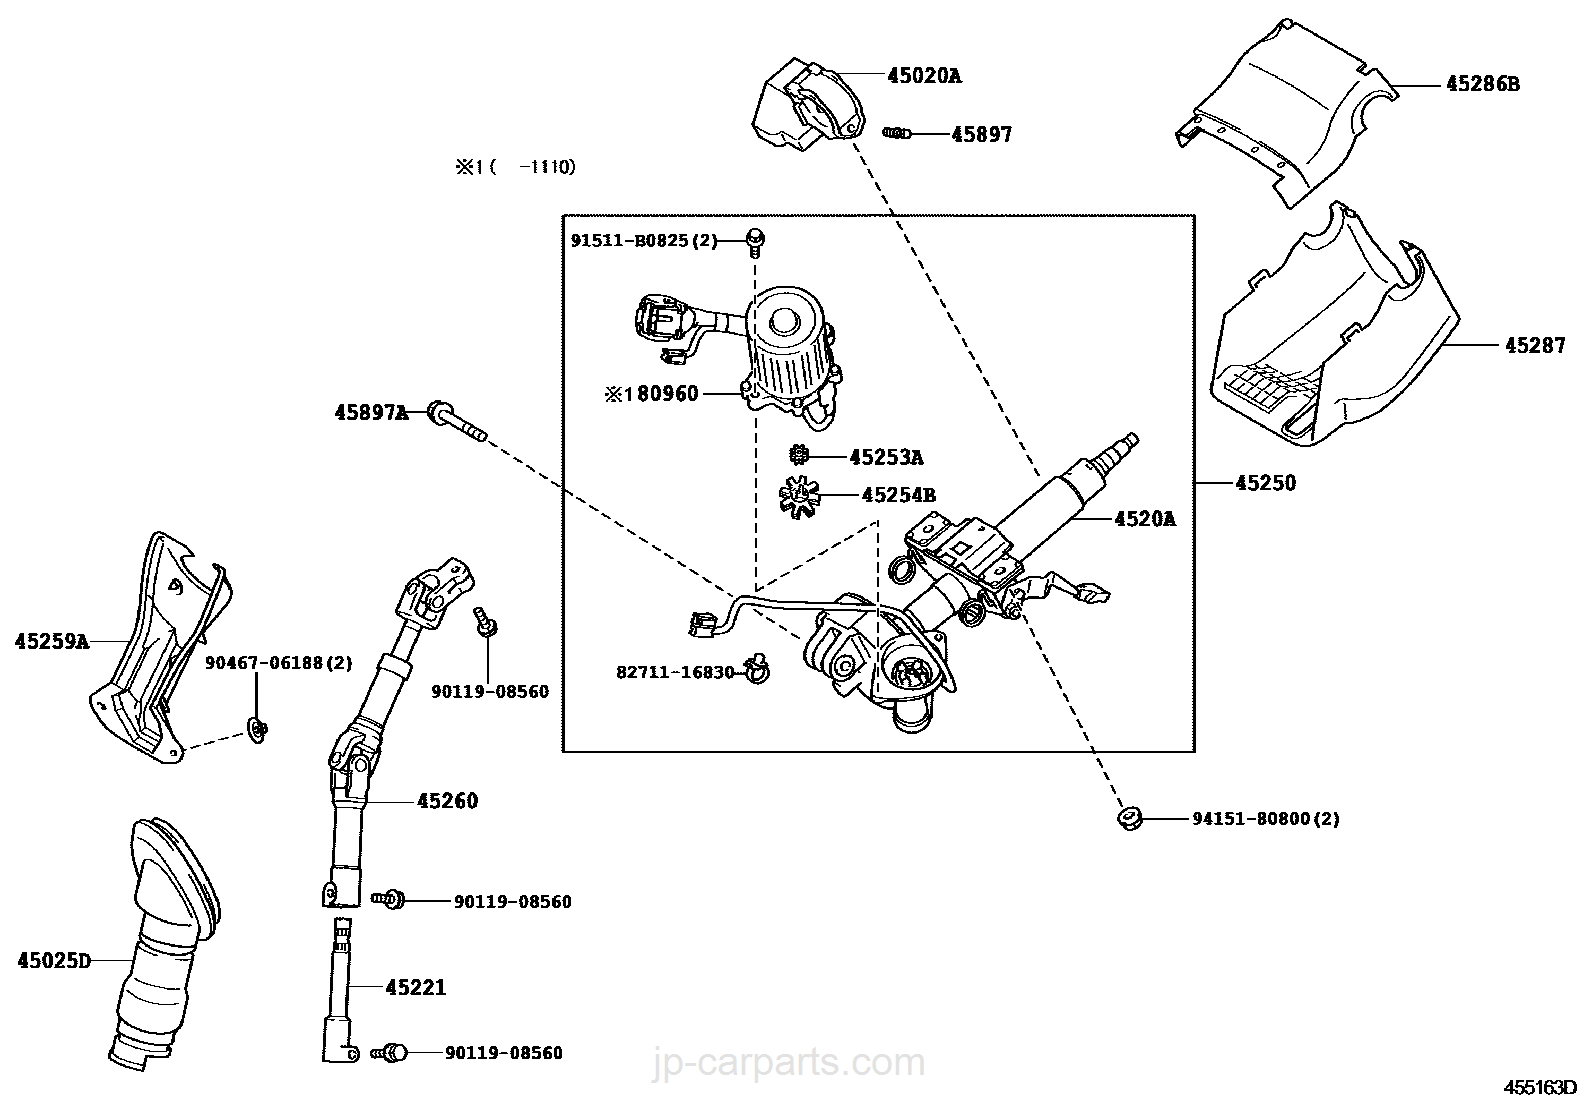 steering column & shaft / toyota | part list|jp-carparts.com reese fifth wheel hitch parts diagram jp parts diagram